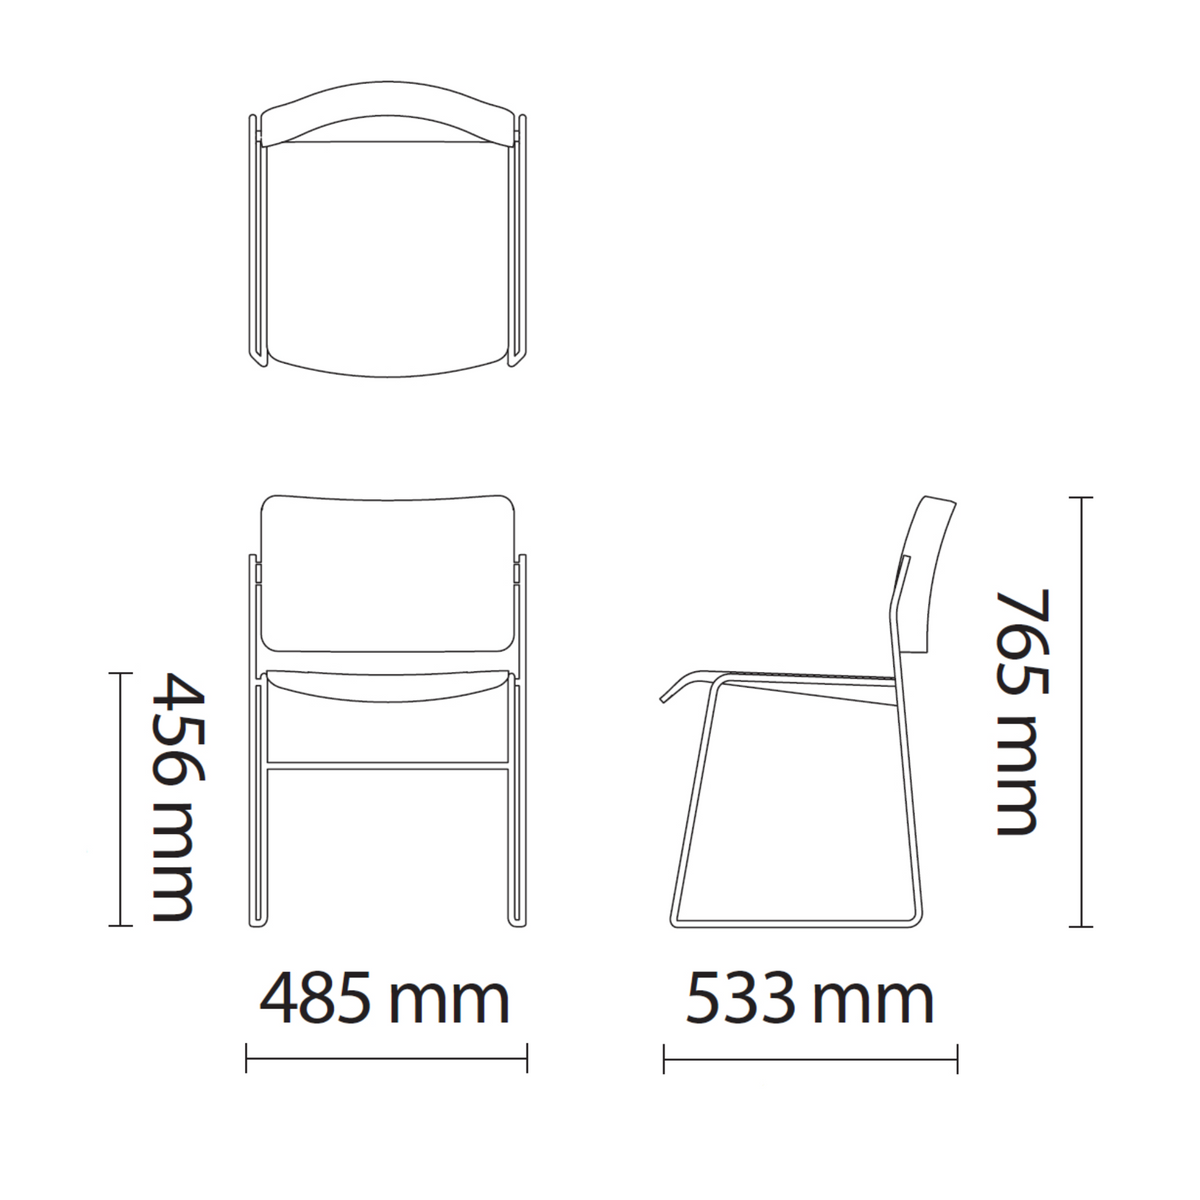 Dimensions for HOWE Plastic Resin Chair with Chrome Base by David Rowland